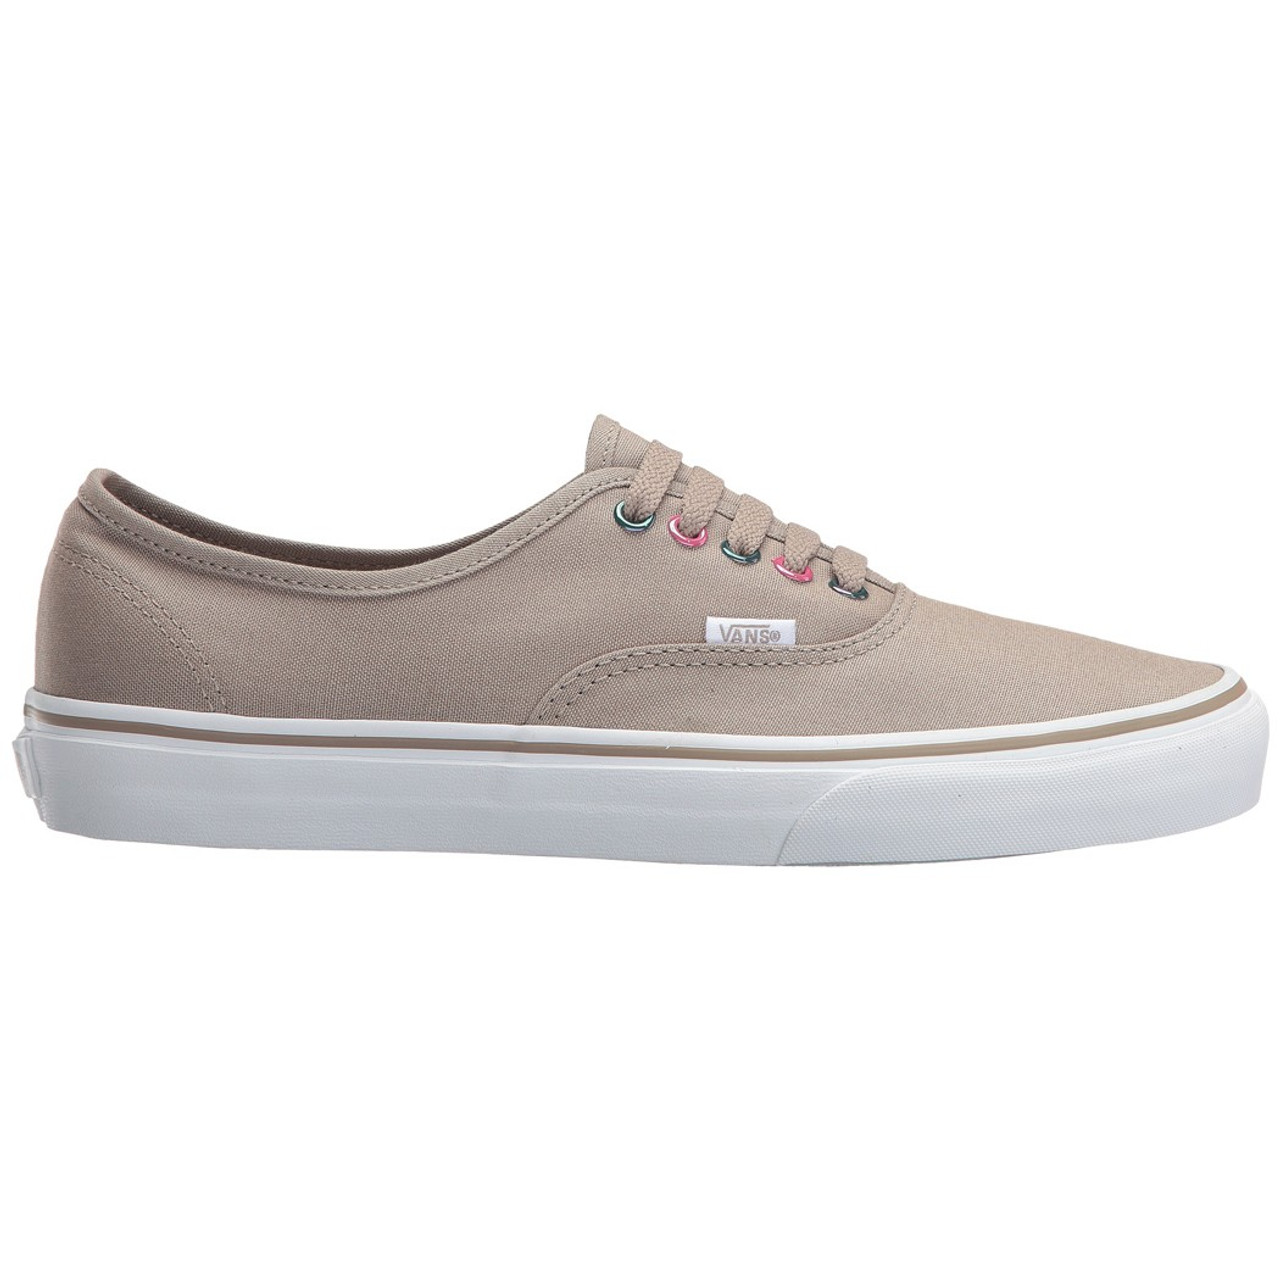 45bf57ab7d Vans Shoes - Authentic Multi Metallic - Desert Taupe True White - Surf and  Dirt